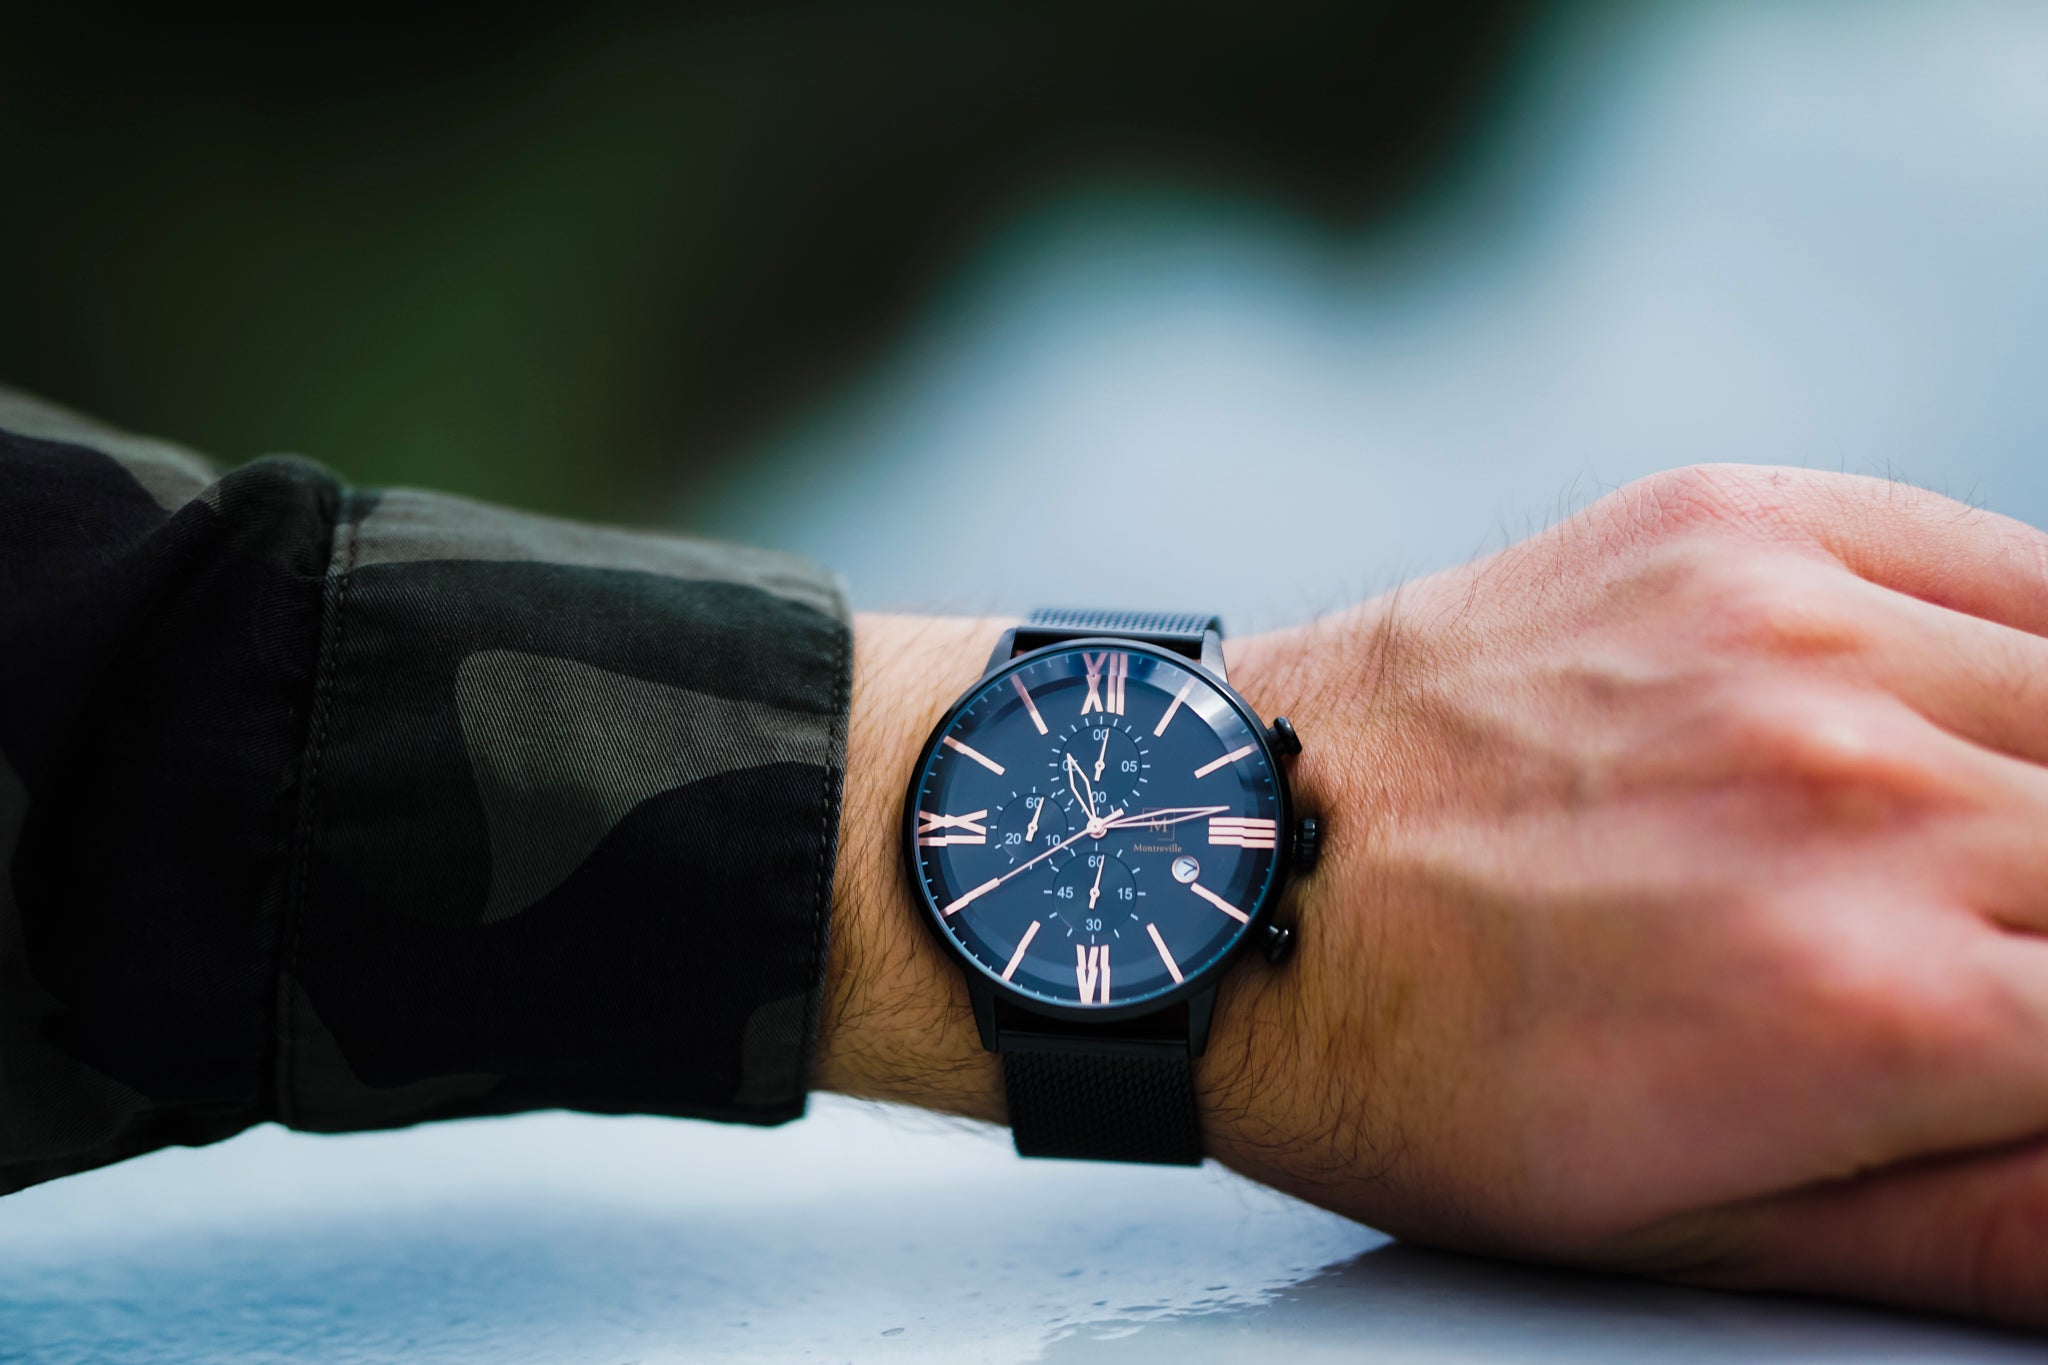 An image of a black watch from the brand Montreville. The watch is being worn by a man. On the picture you can only see the arm and hand of the man. The watch is called Baku and had rosée golden numerals, a chronometer and date. The timepiece has a unique design.